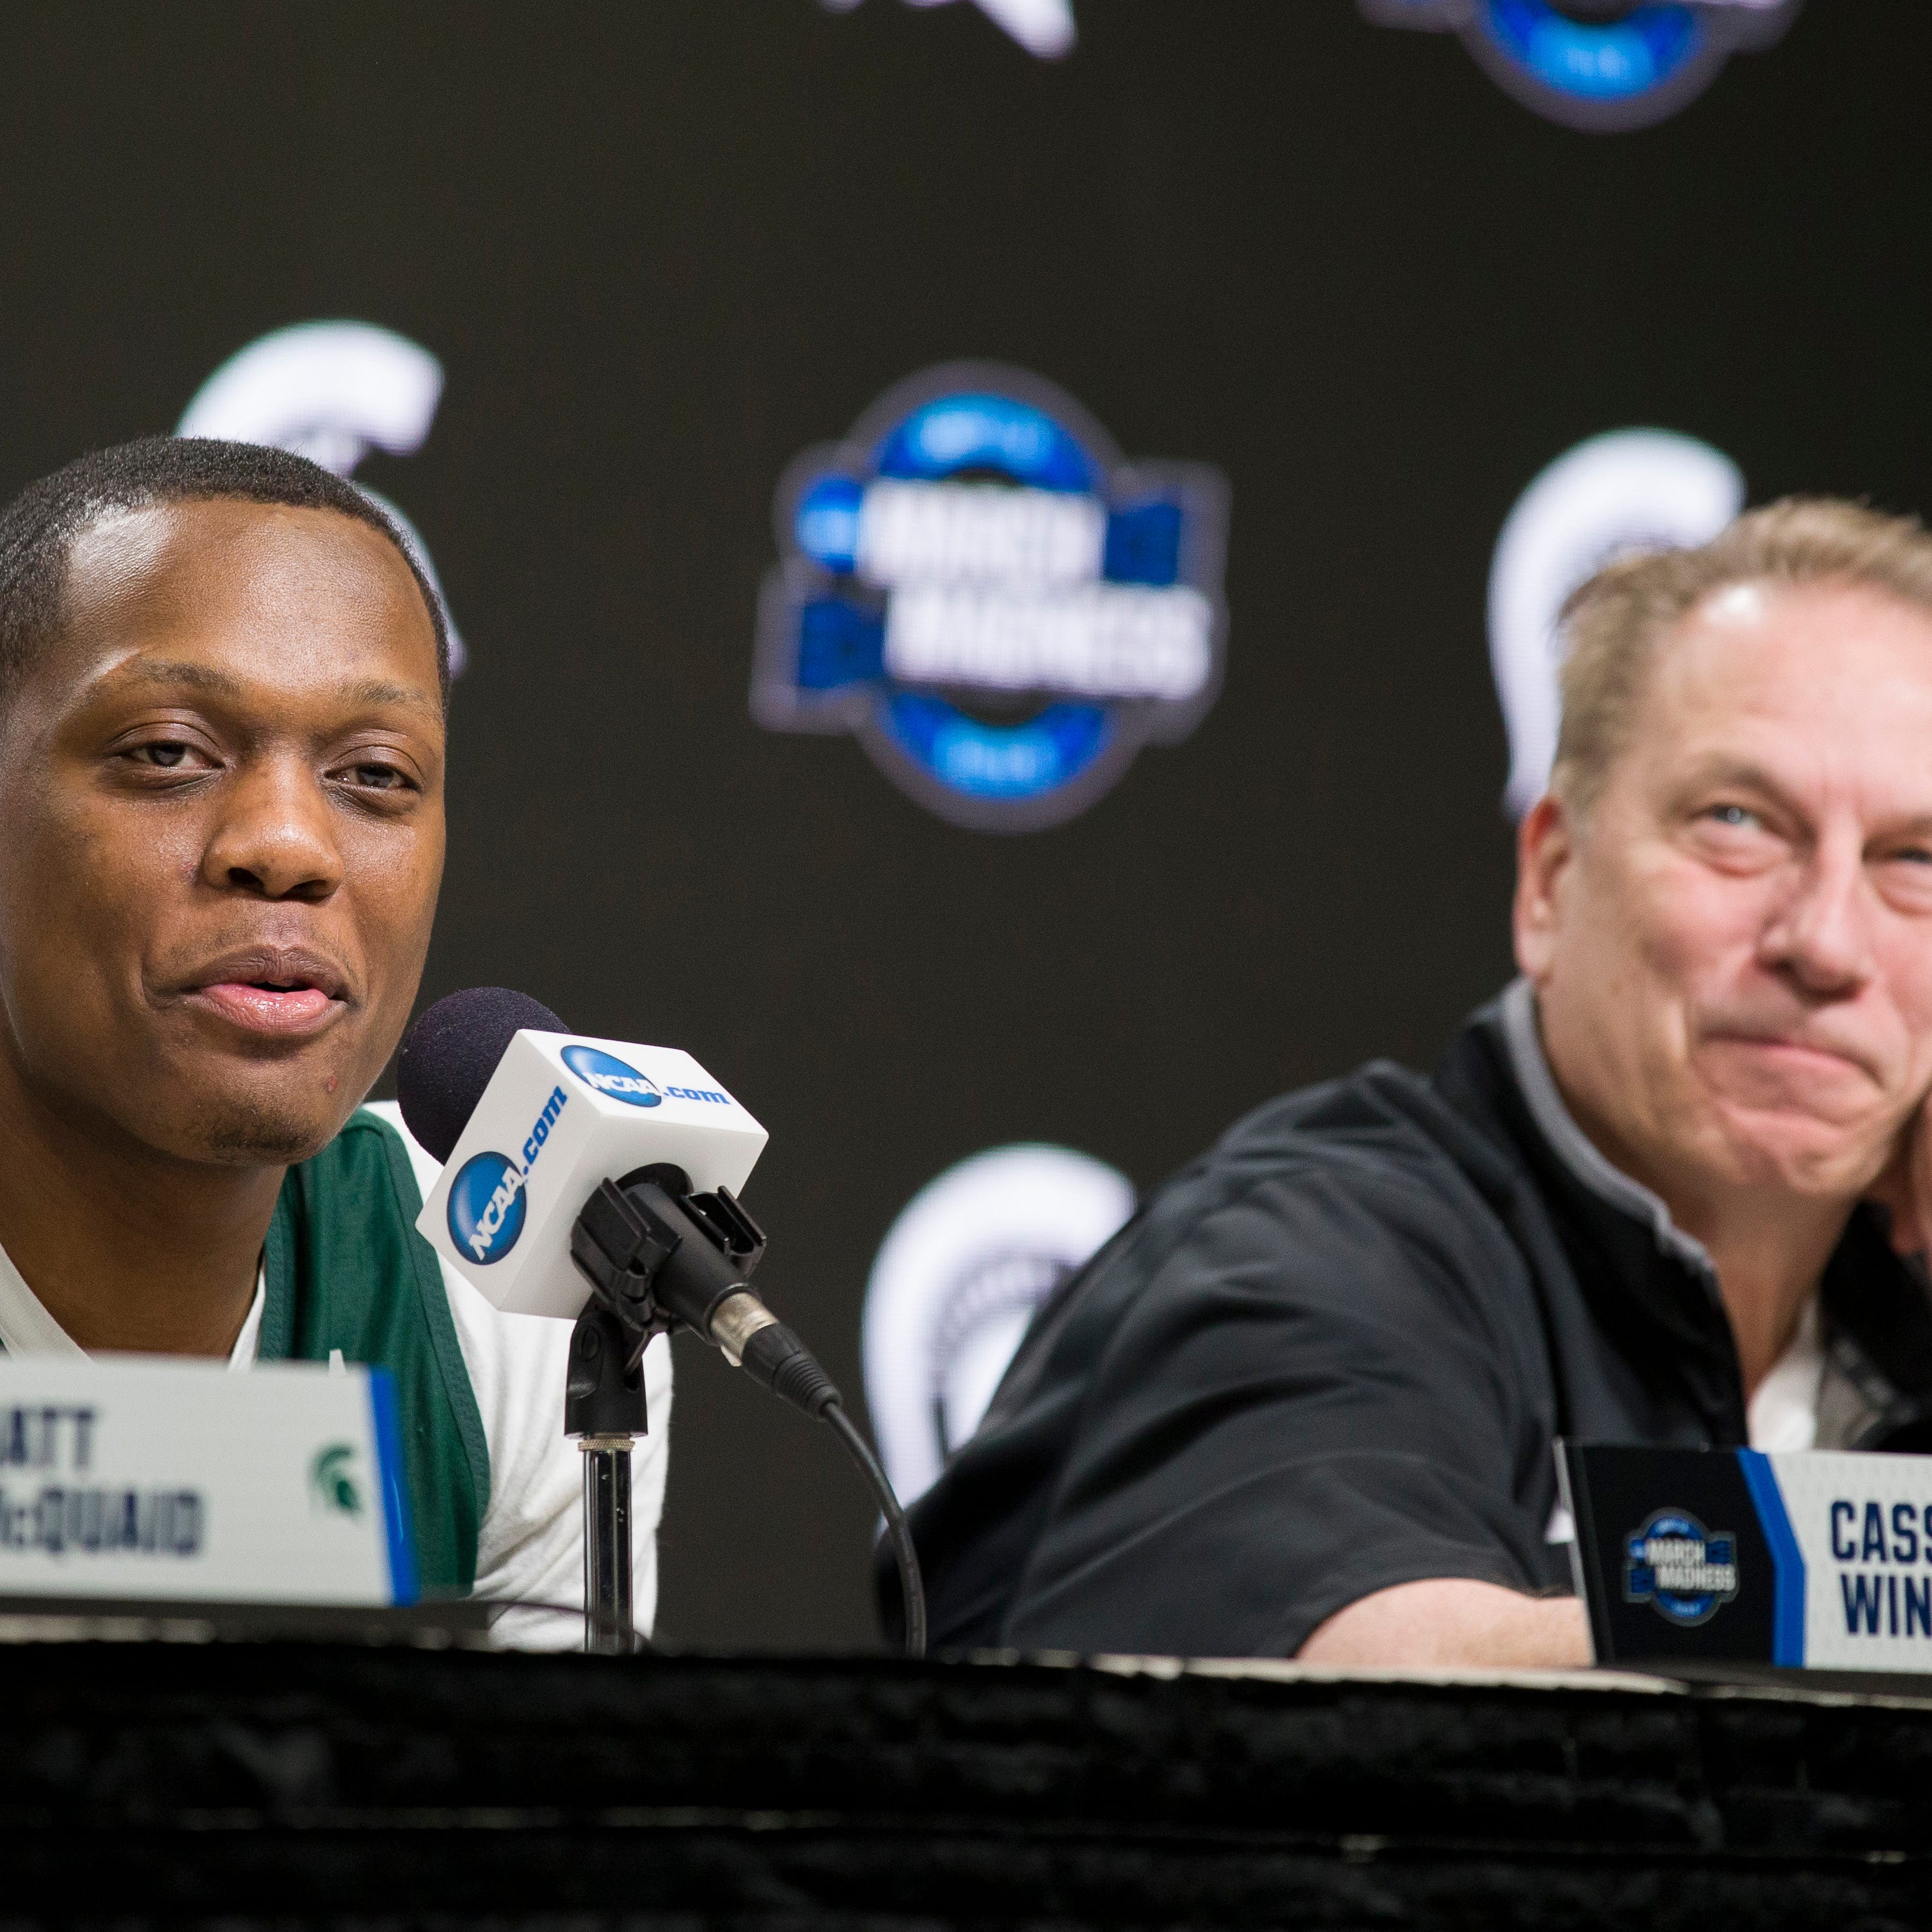 'I love it': Duke-MSU, matchup everyone wanted to see, is finally here